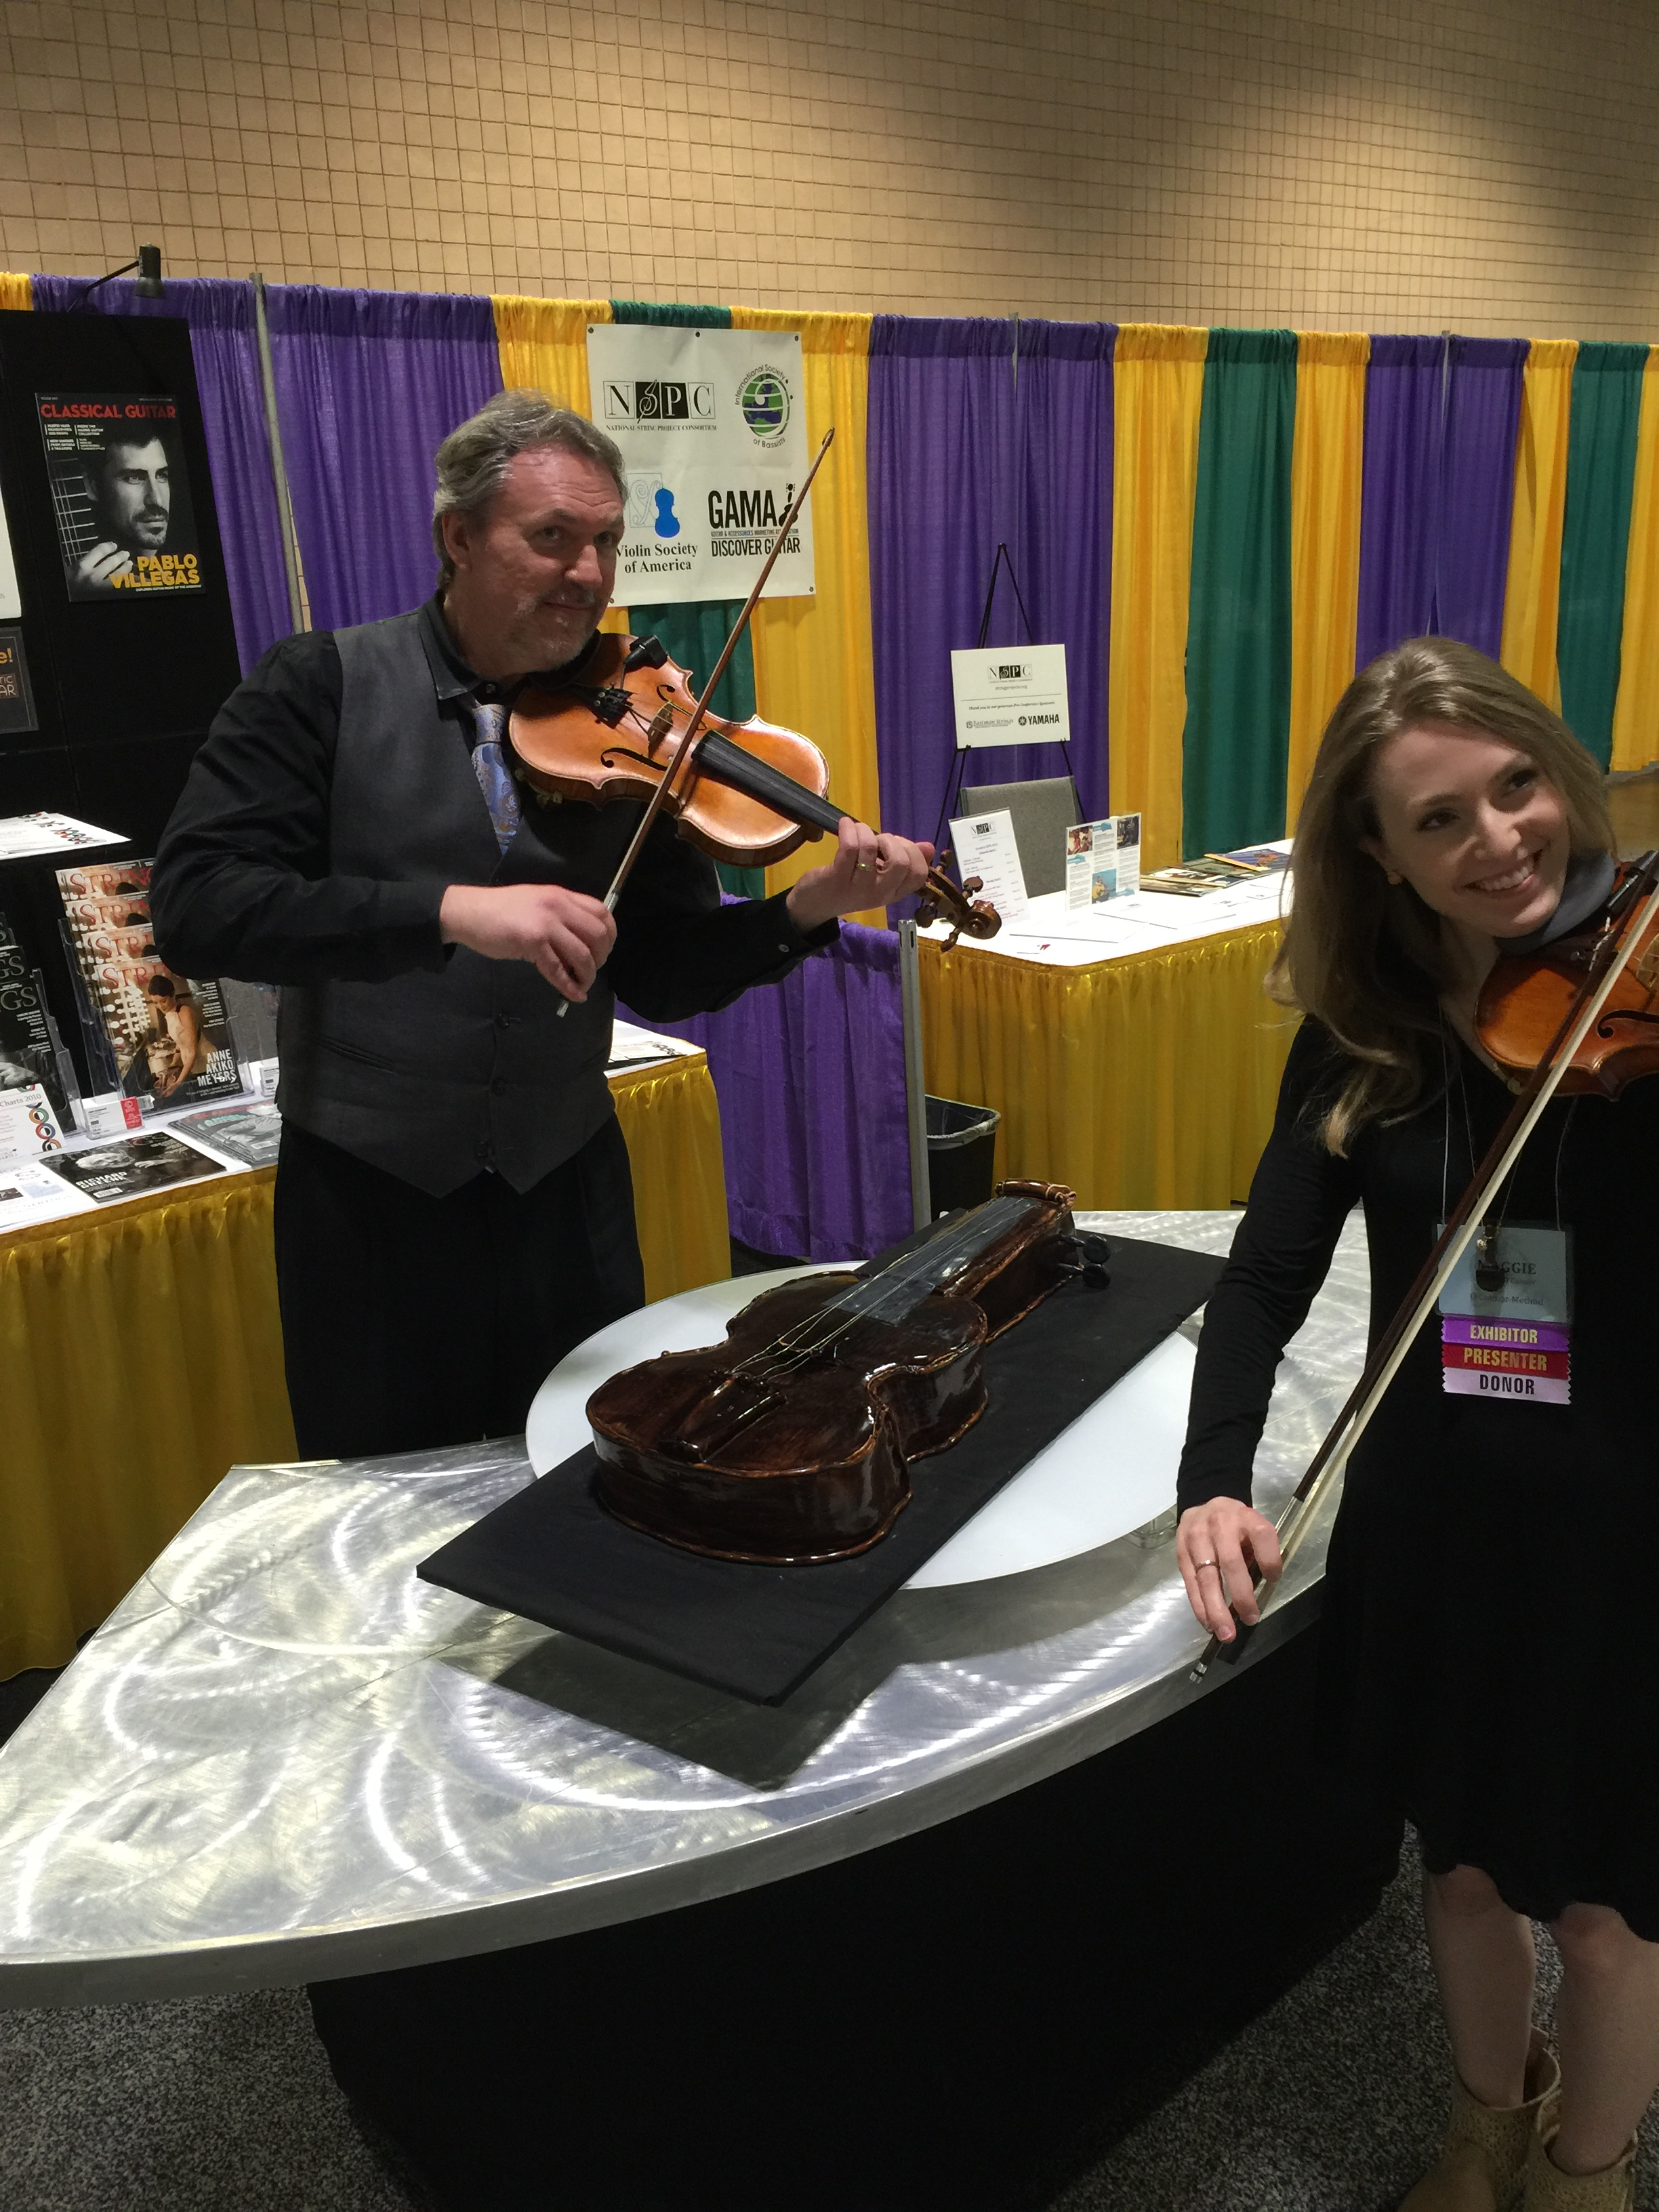 Mark and Maggie O'Connor fiddling around the violin cake.